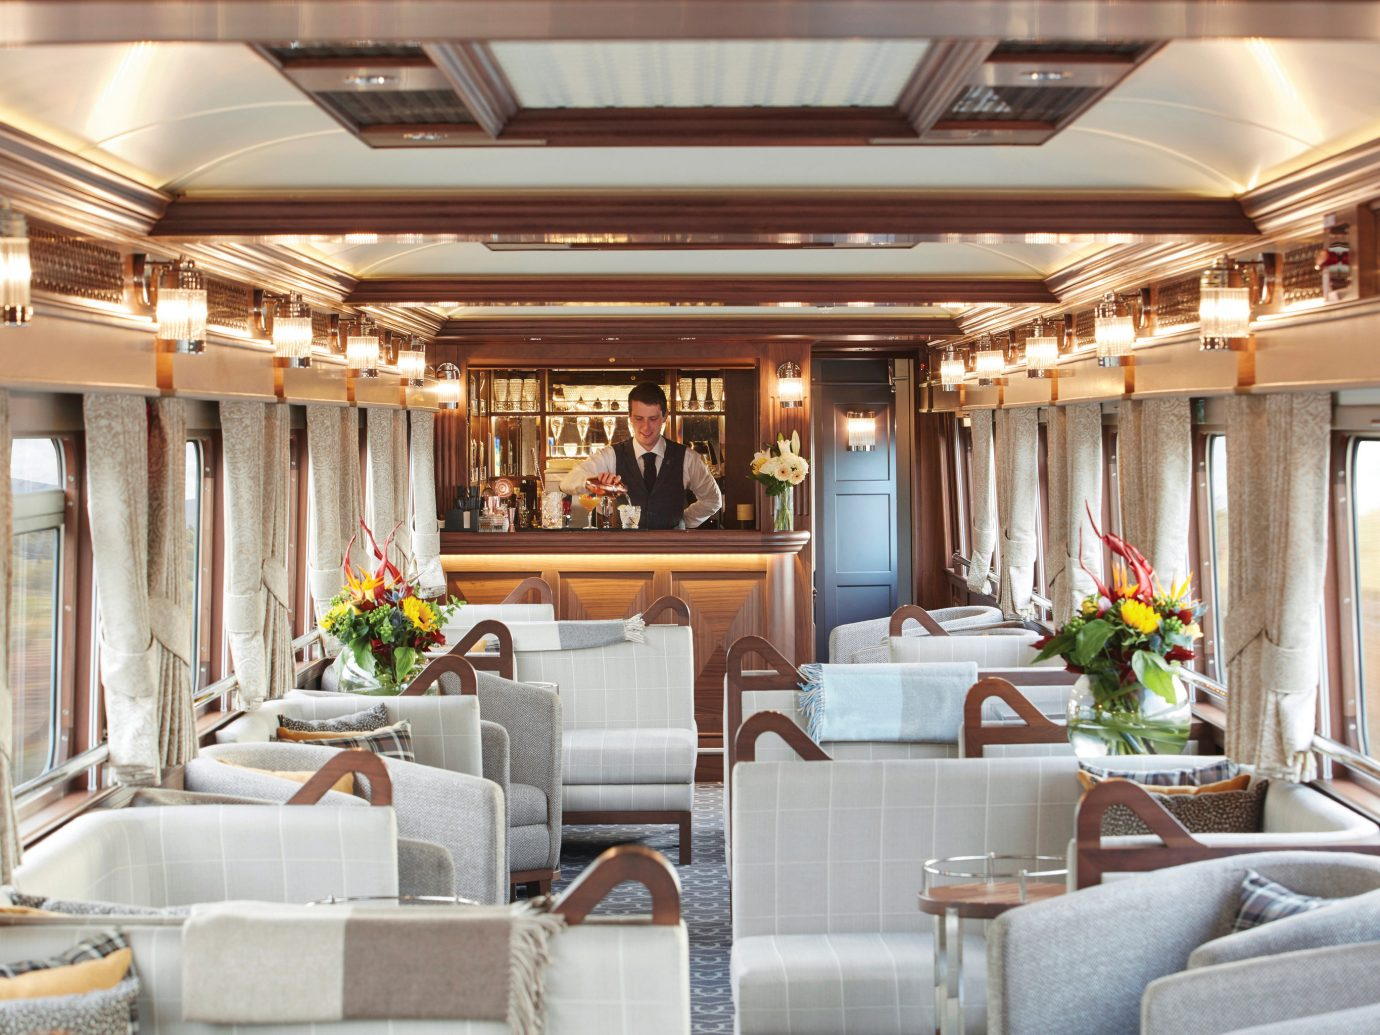 Trip Ideas indoor ceiling window room Boat Lobby yacht vehicle estate passenger ship interior design living room home meal function hall window covering mansion furniture